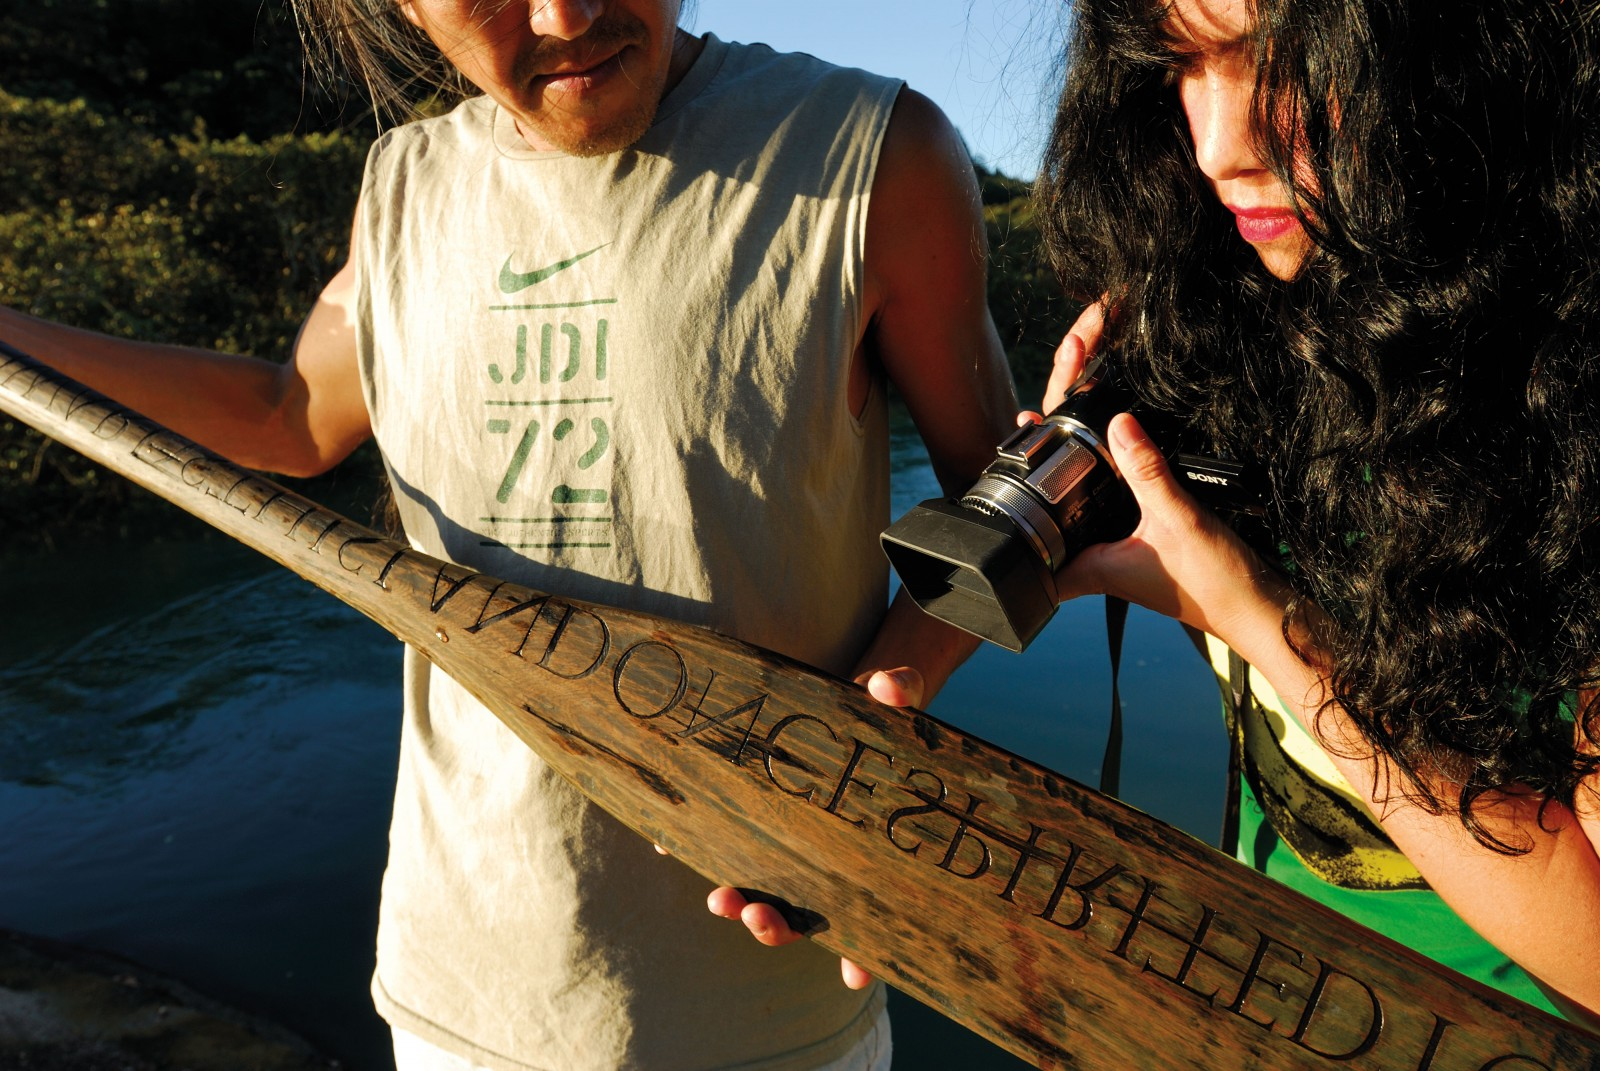 A special connection between land and sea is not lost on artist Kazu Nakagawa as he gives an old Waiheke oar a new lease of life in an artwork. Carved with the words TOWARDS THIS LAND ONCE SPIRITED—alluding to the paddle's history—the work serves here as a prop for filmmaker Bridget Quick. Her short film-in-progress, Knowing, traces Nakagawa's journey from marine engineer in Tokyo to Waiheke-based artist.